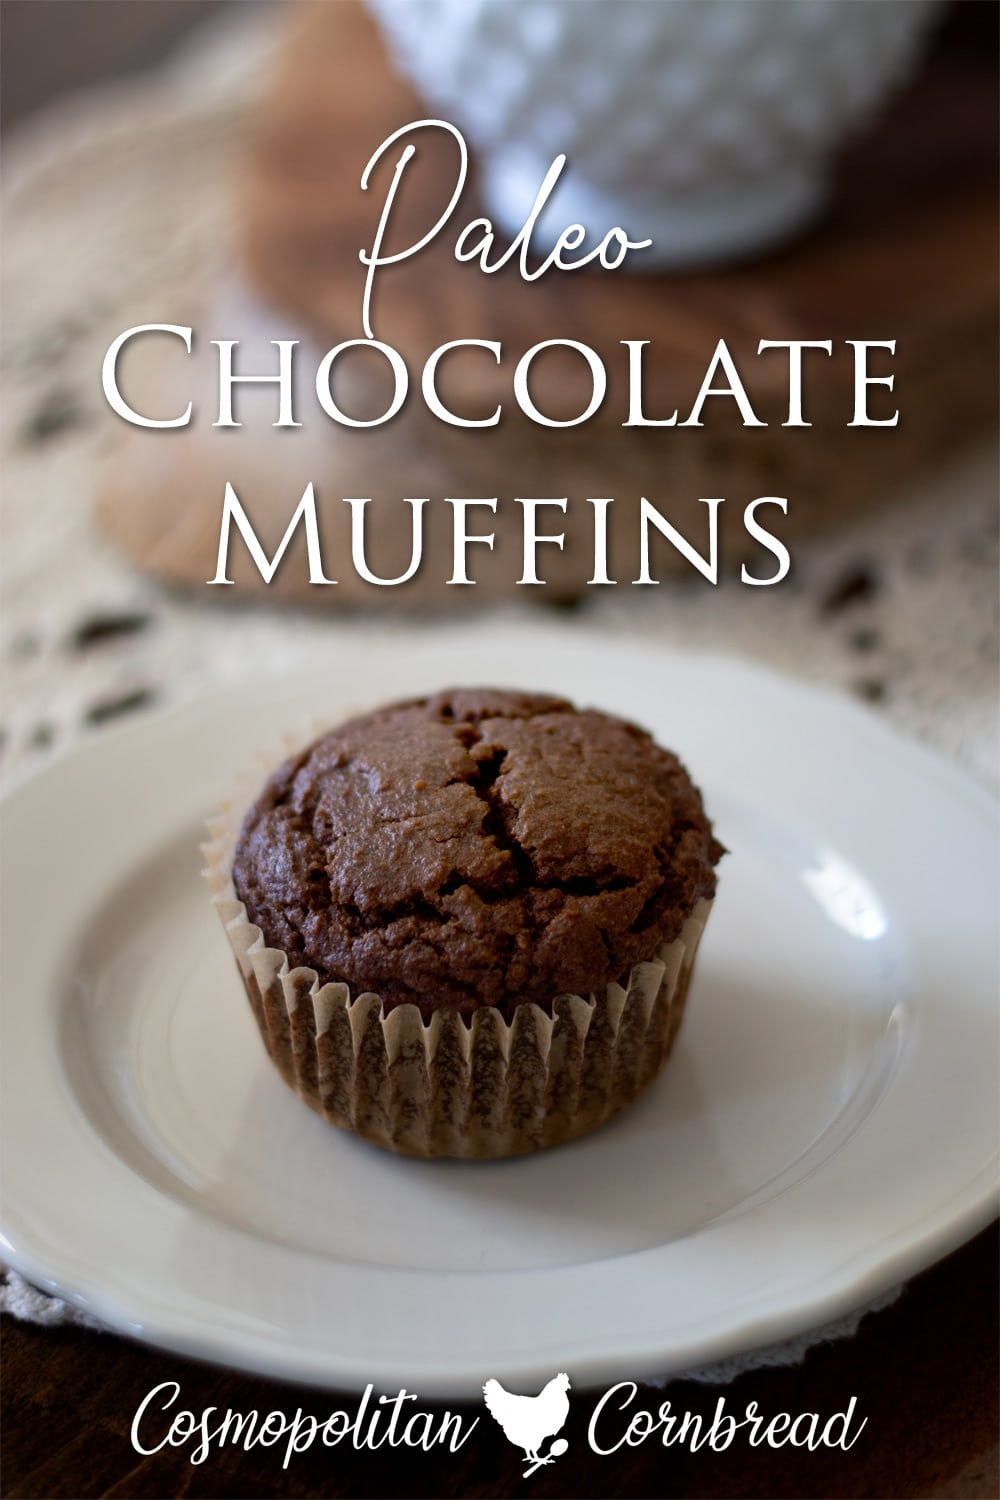 Delicious low-carb, paleo Chocolate Muffins from Cosmopolitan Cornbread.